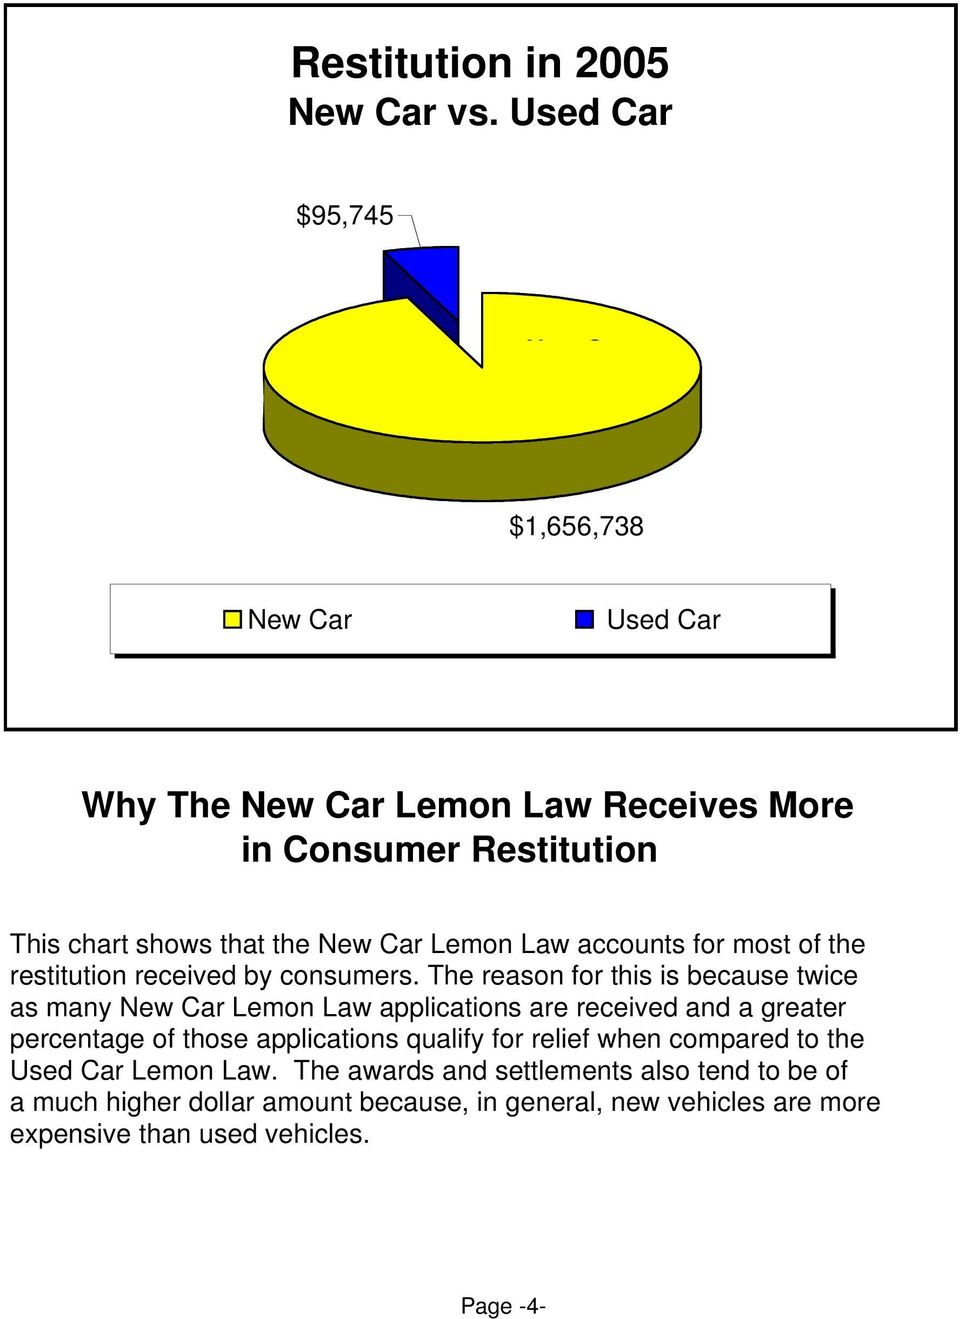 Lemon Law accounts for most of the restitution received by consumers.